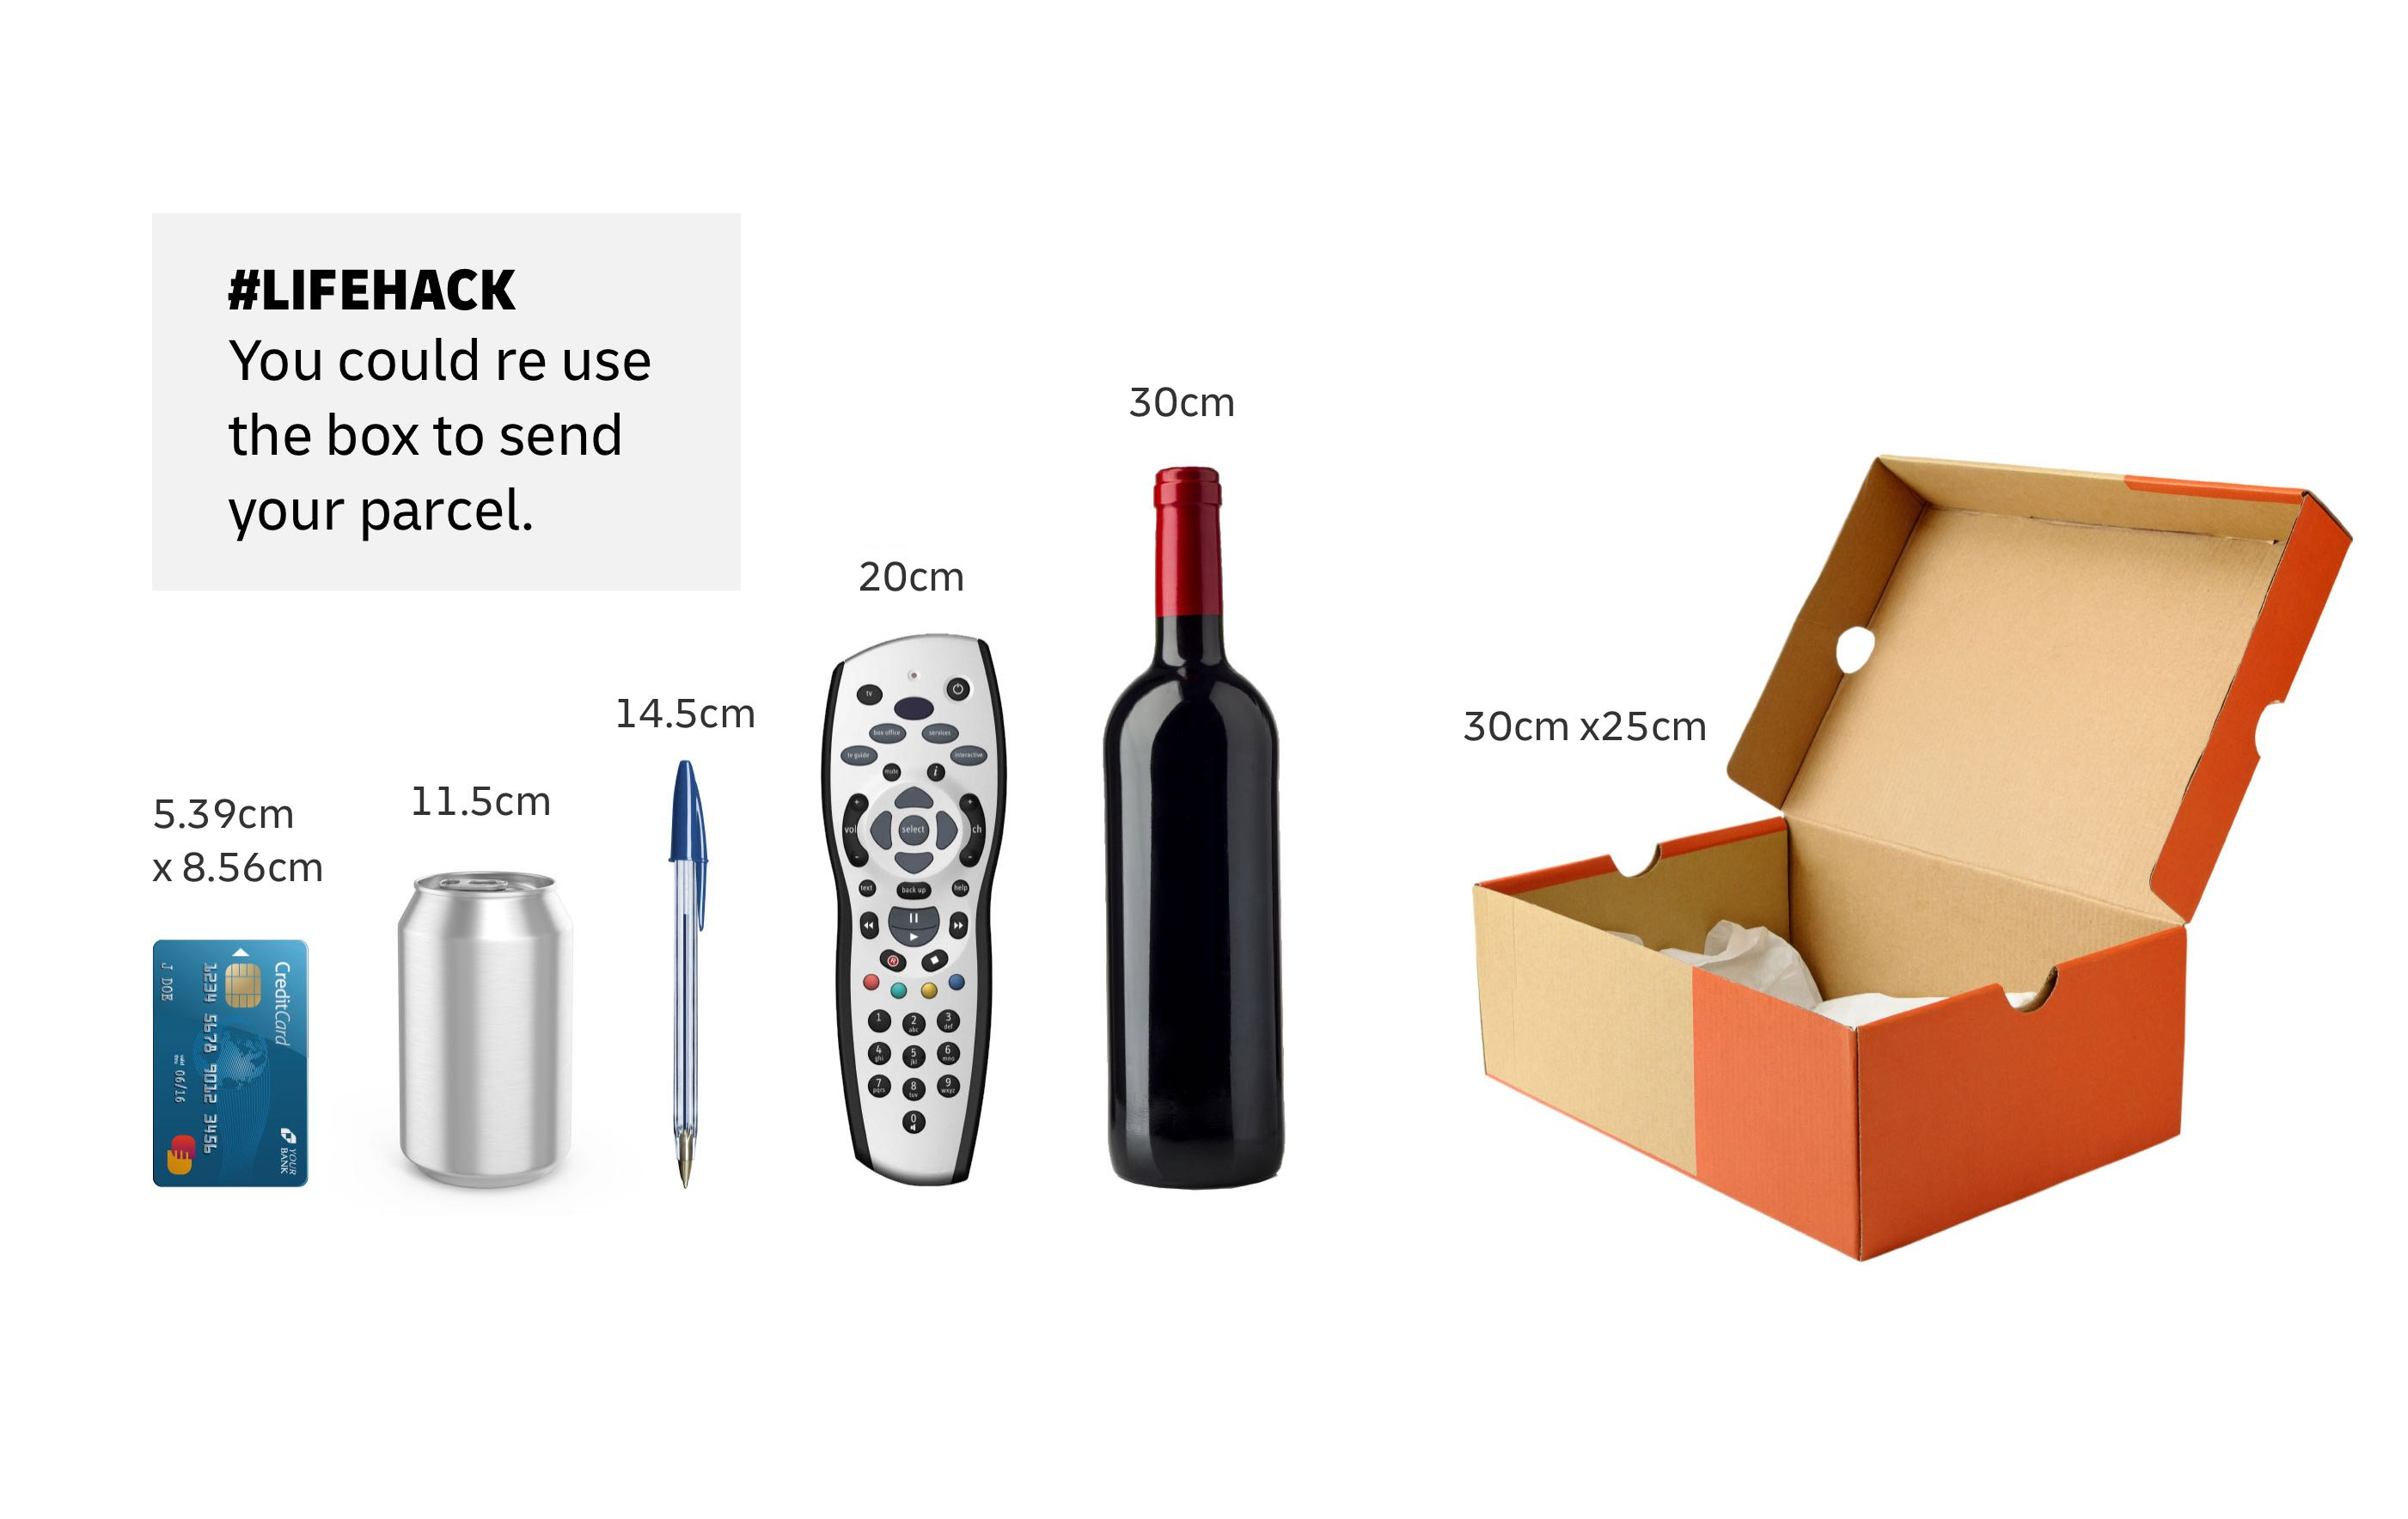 Measurement of household items